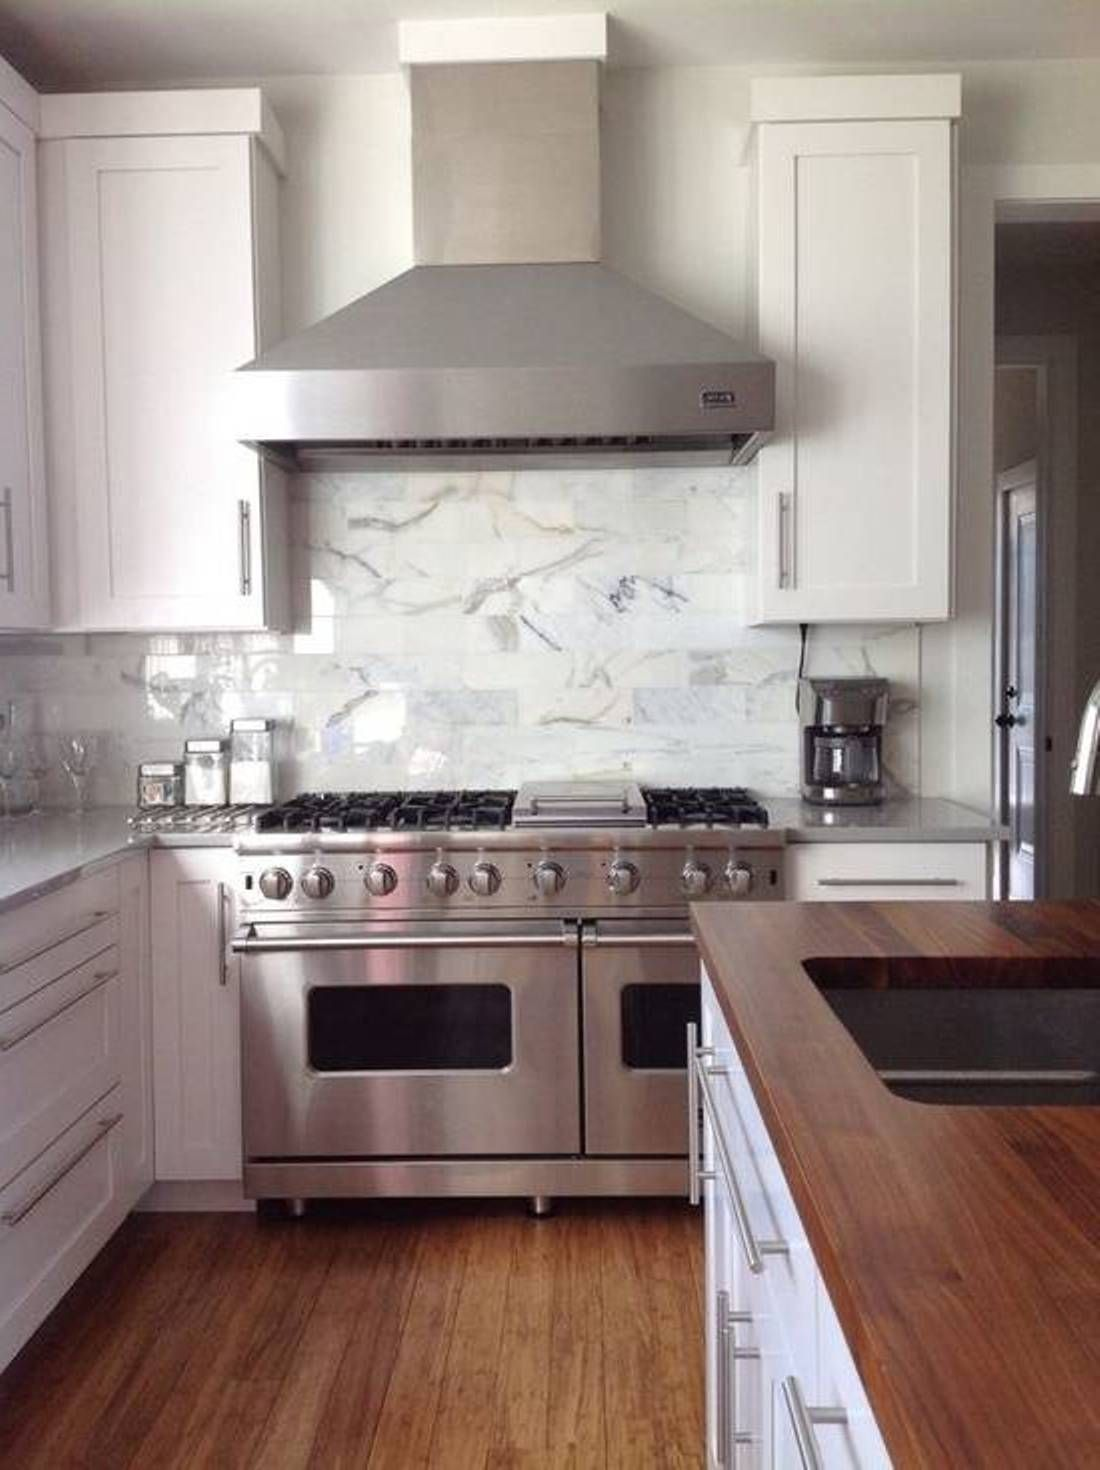 Unique Darkslategray Stainless Steel Stove Backsplash Pretty Range Hood Hardwood Floor Feat